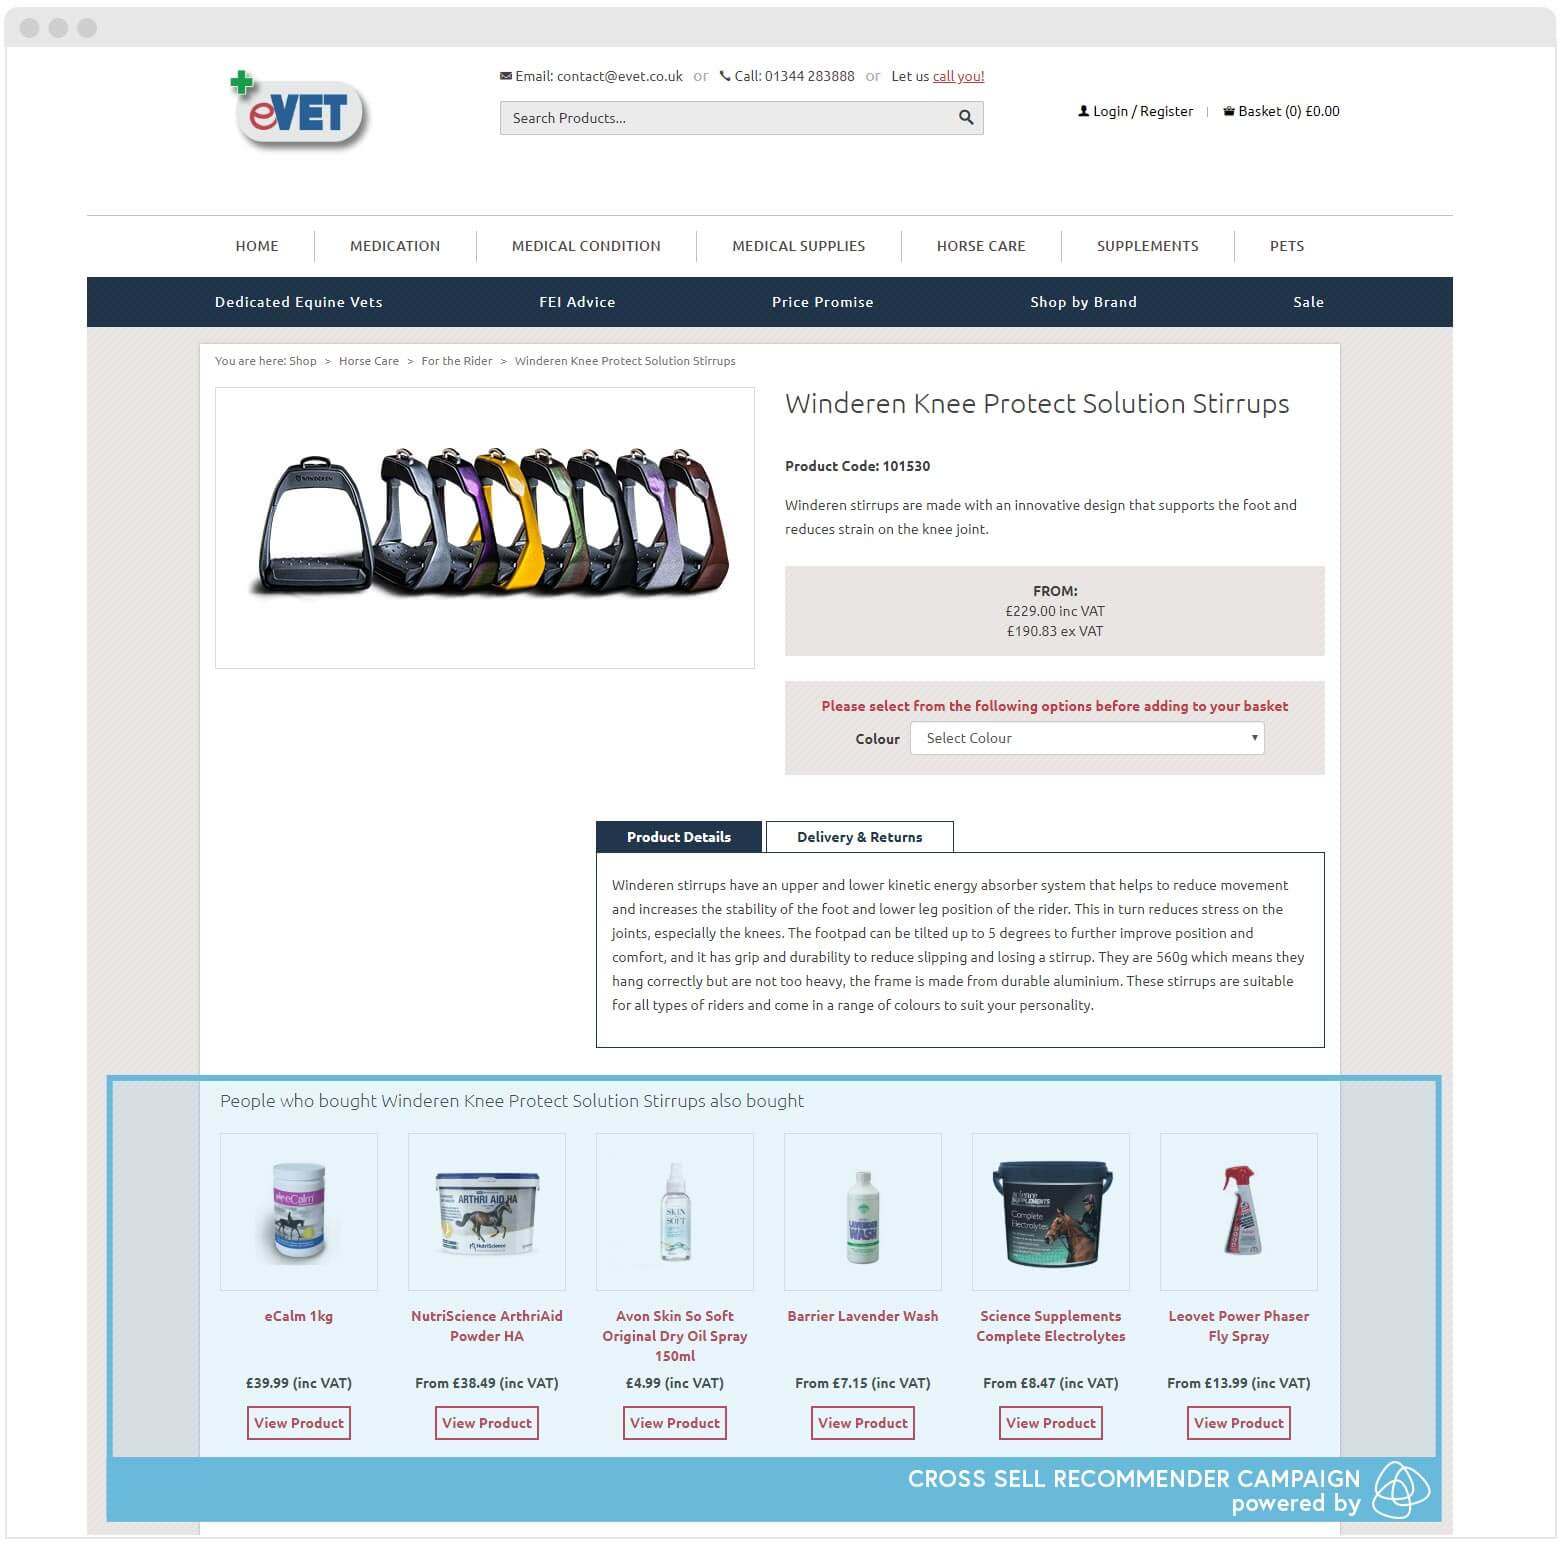 eVet Product Page Recommenders